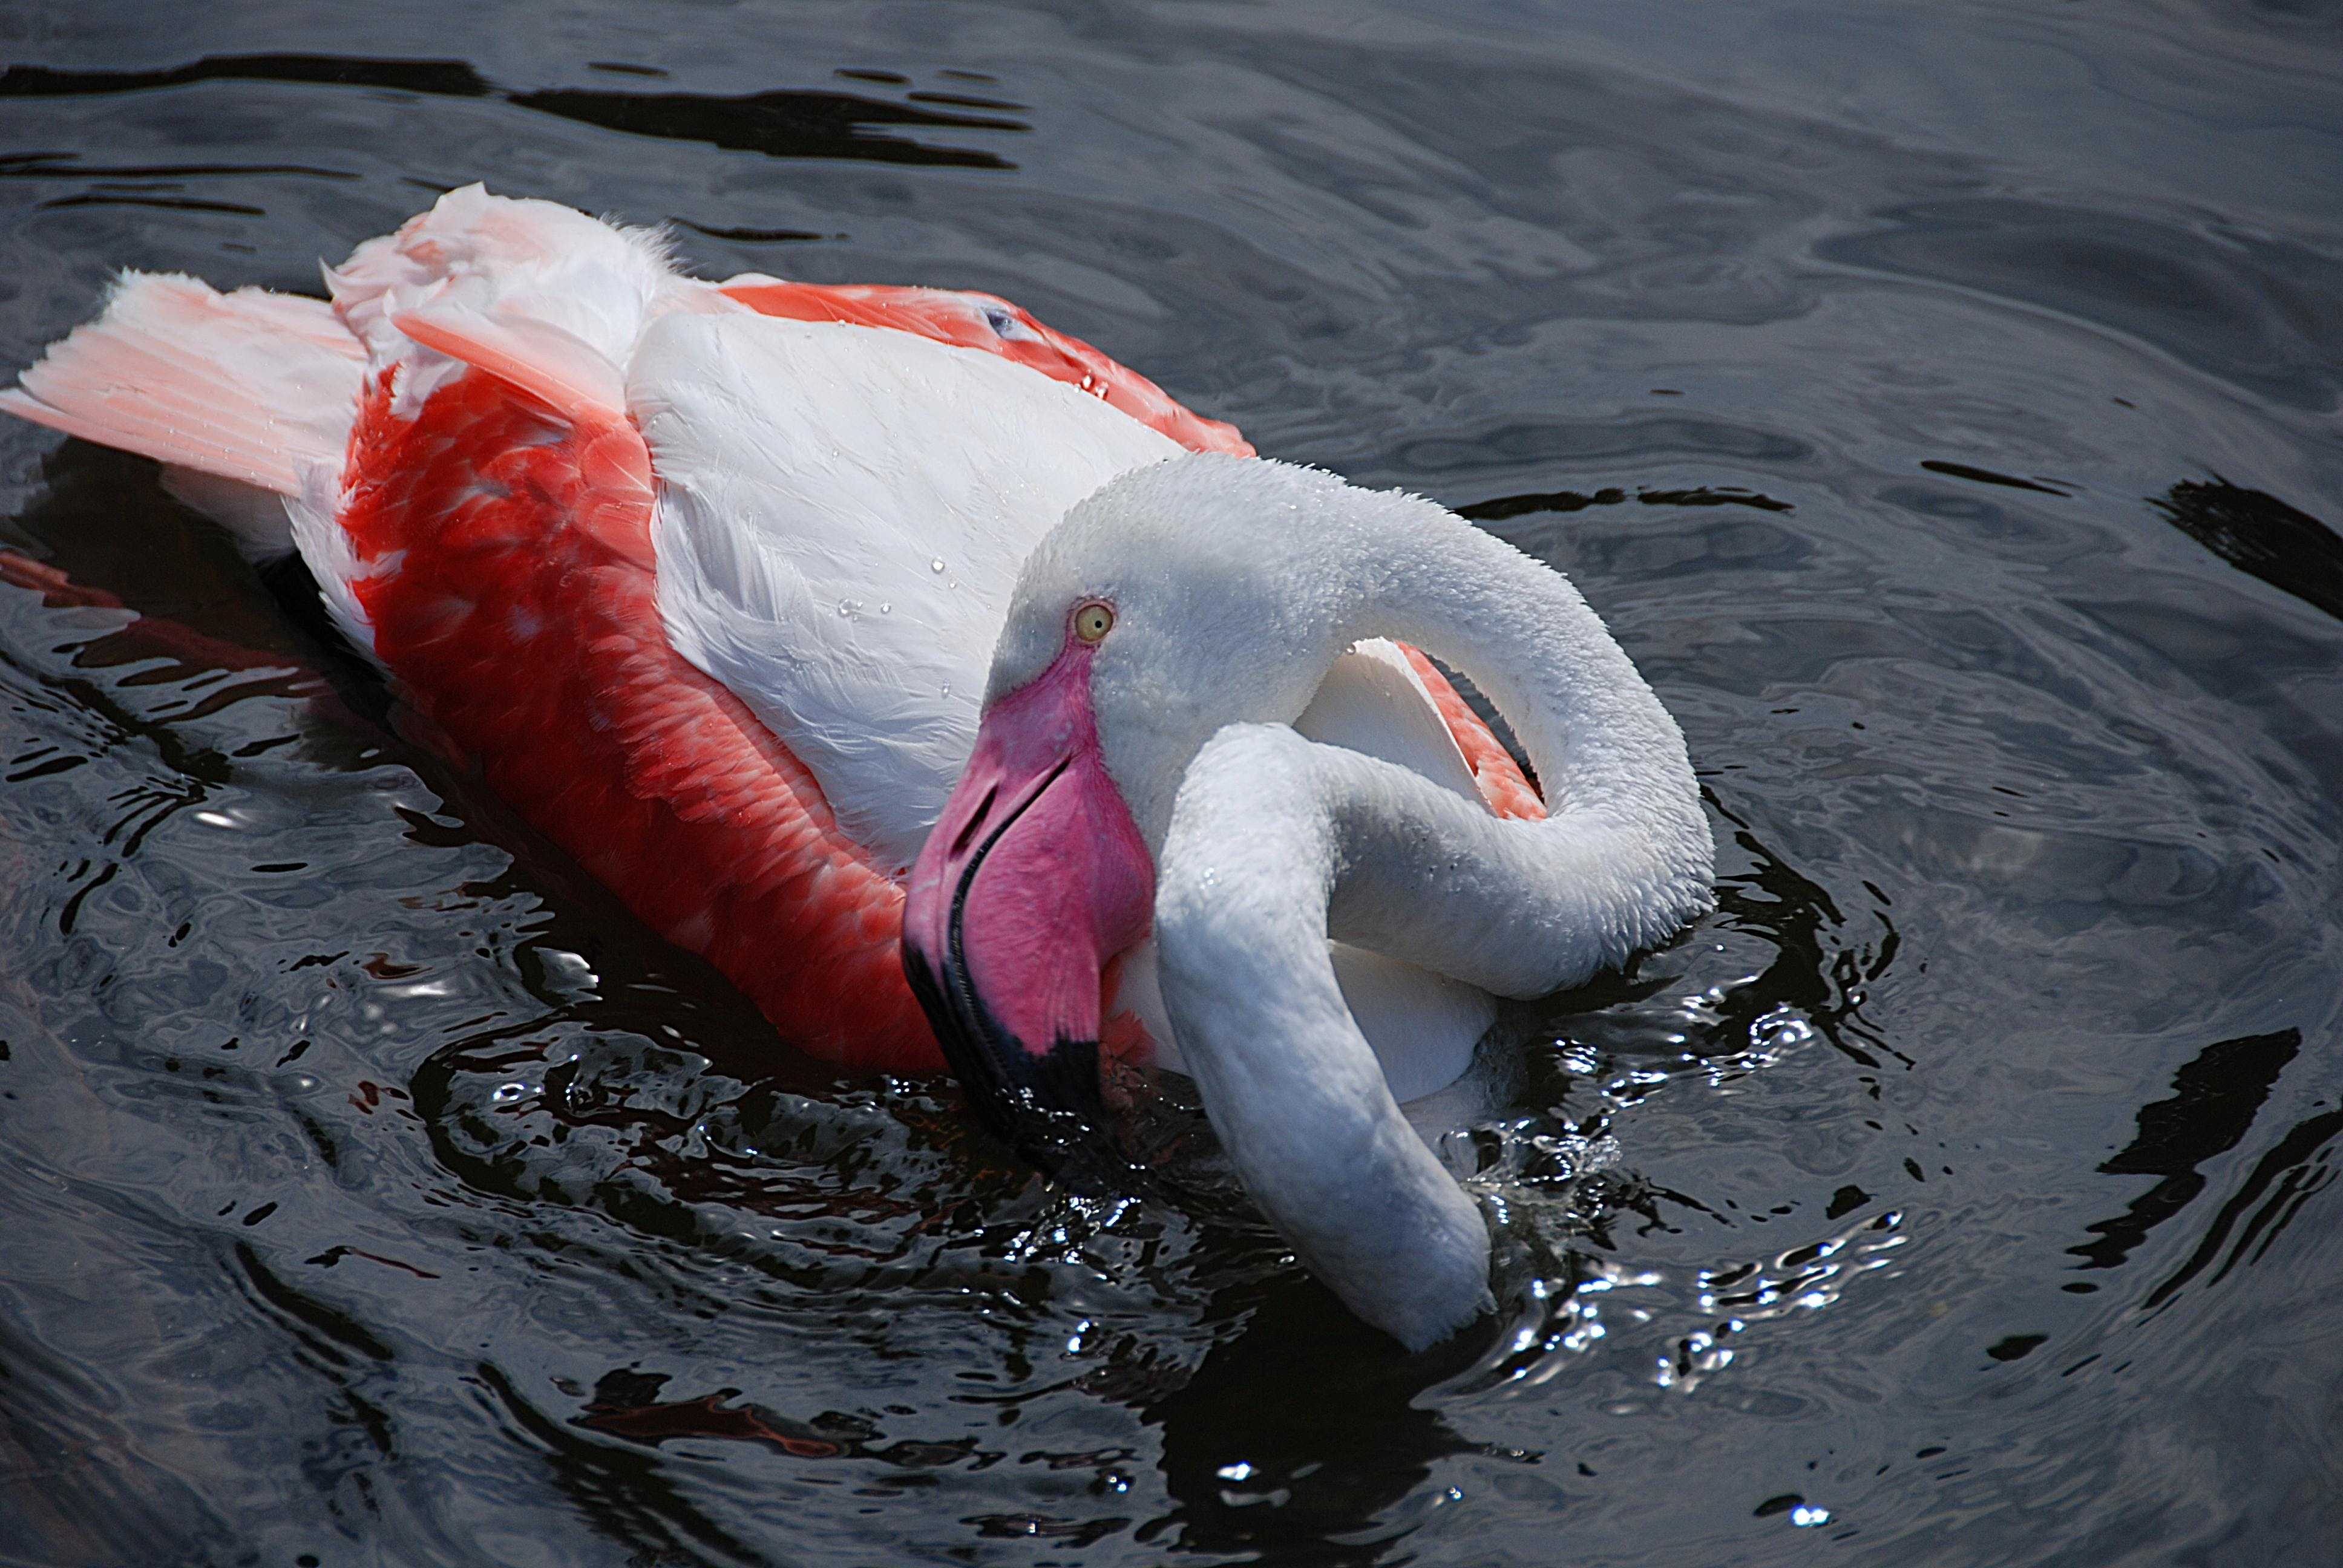 White and Red Swan on Body of Water